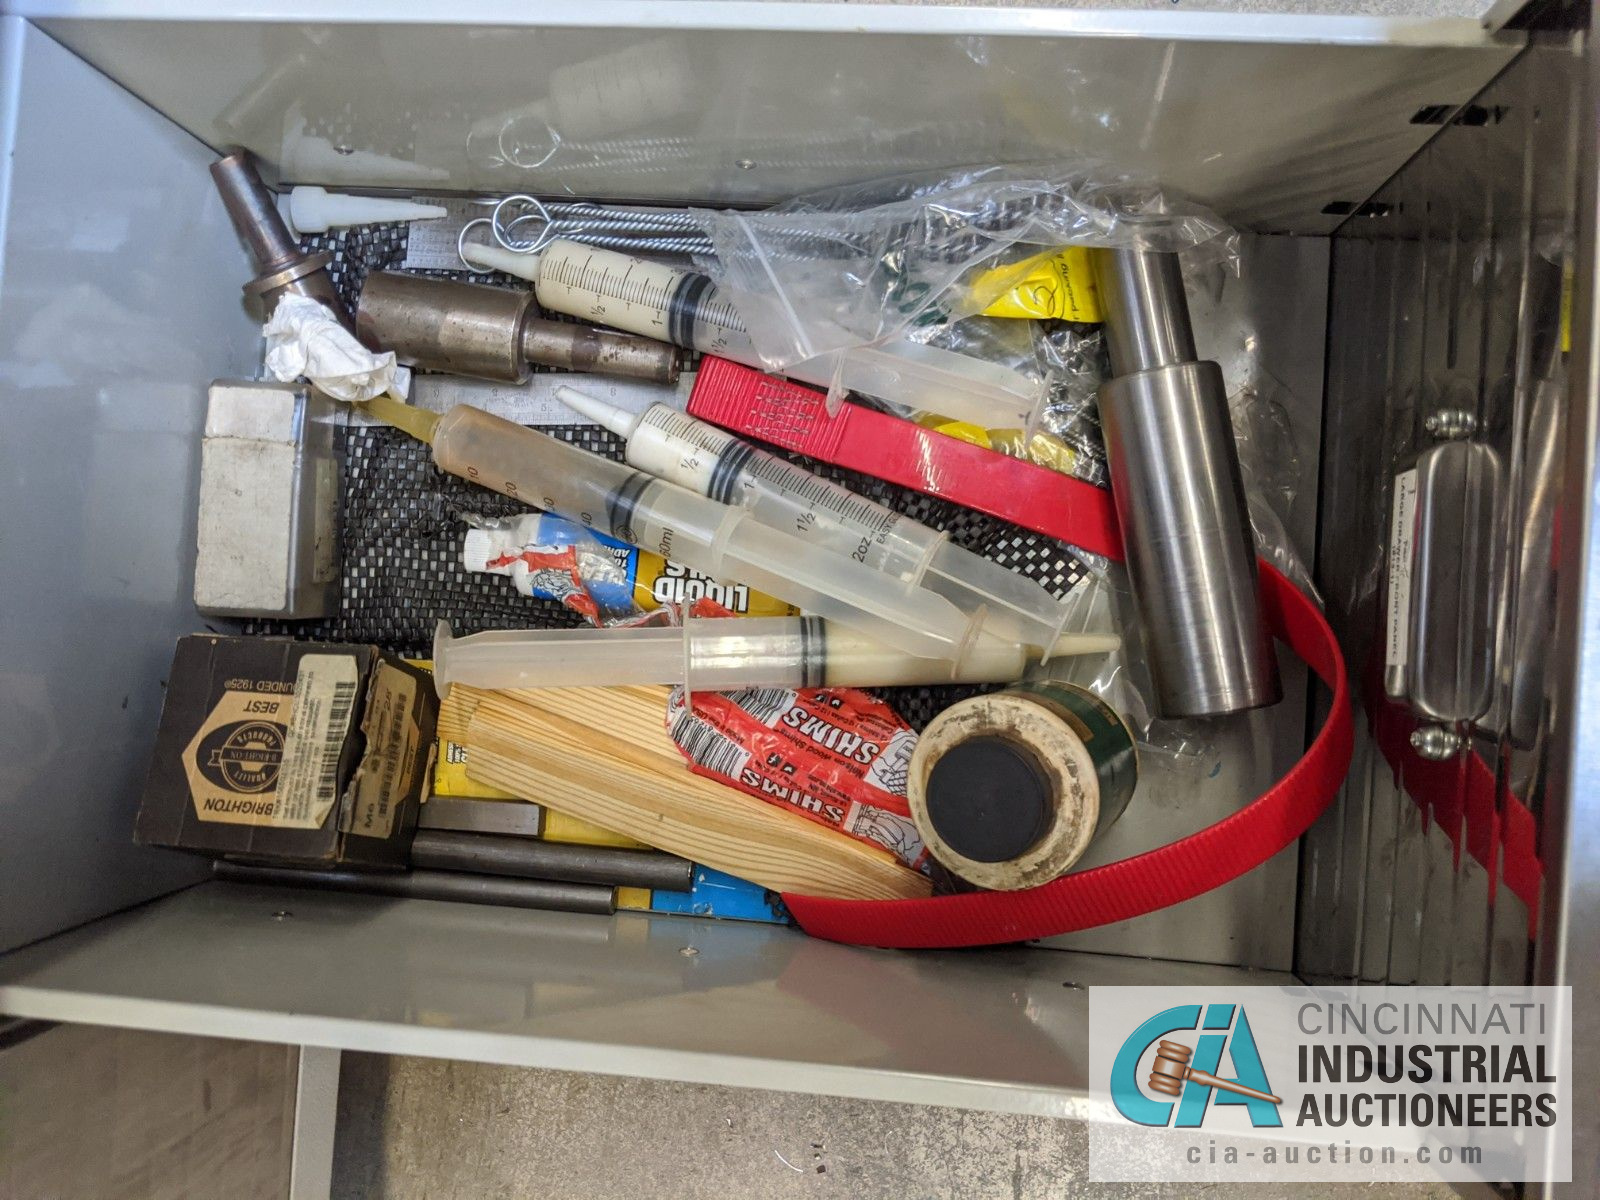 5-DRAWER PORTABLE BOX WITH CONTENTS - ASSORTED HAND TOOLS, MAPLE TOP - Image 6 of 7